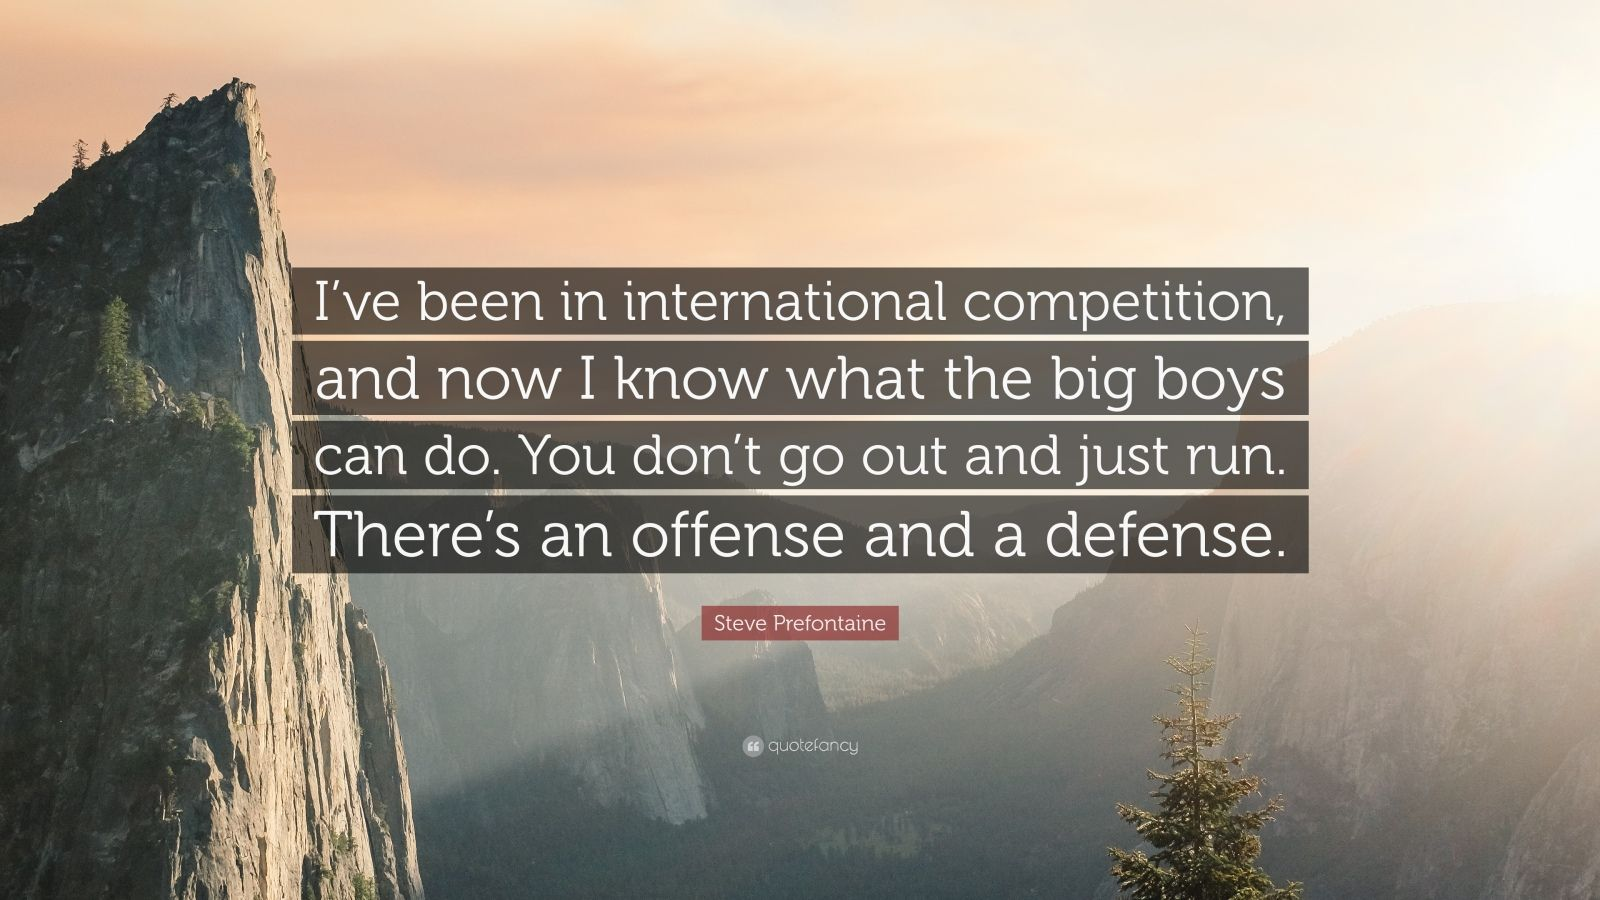 """Steve Prefontaine Quote: """"I've been in international competition, and now I know what the big boys can do. You don't go out and just run. There's an offense and a defense."""""""